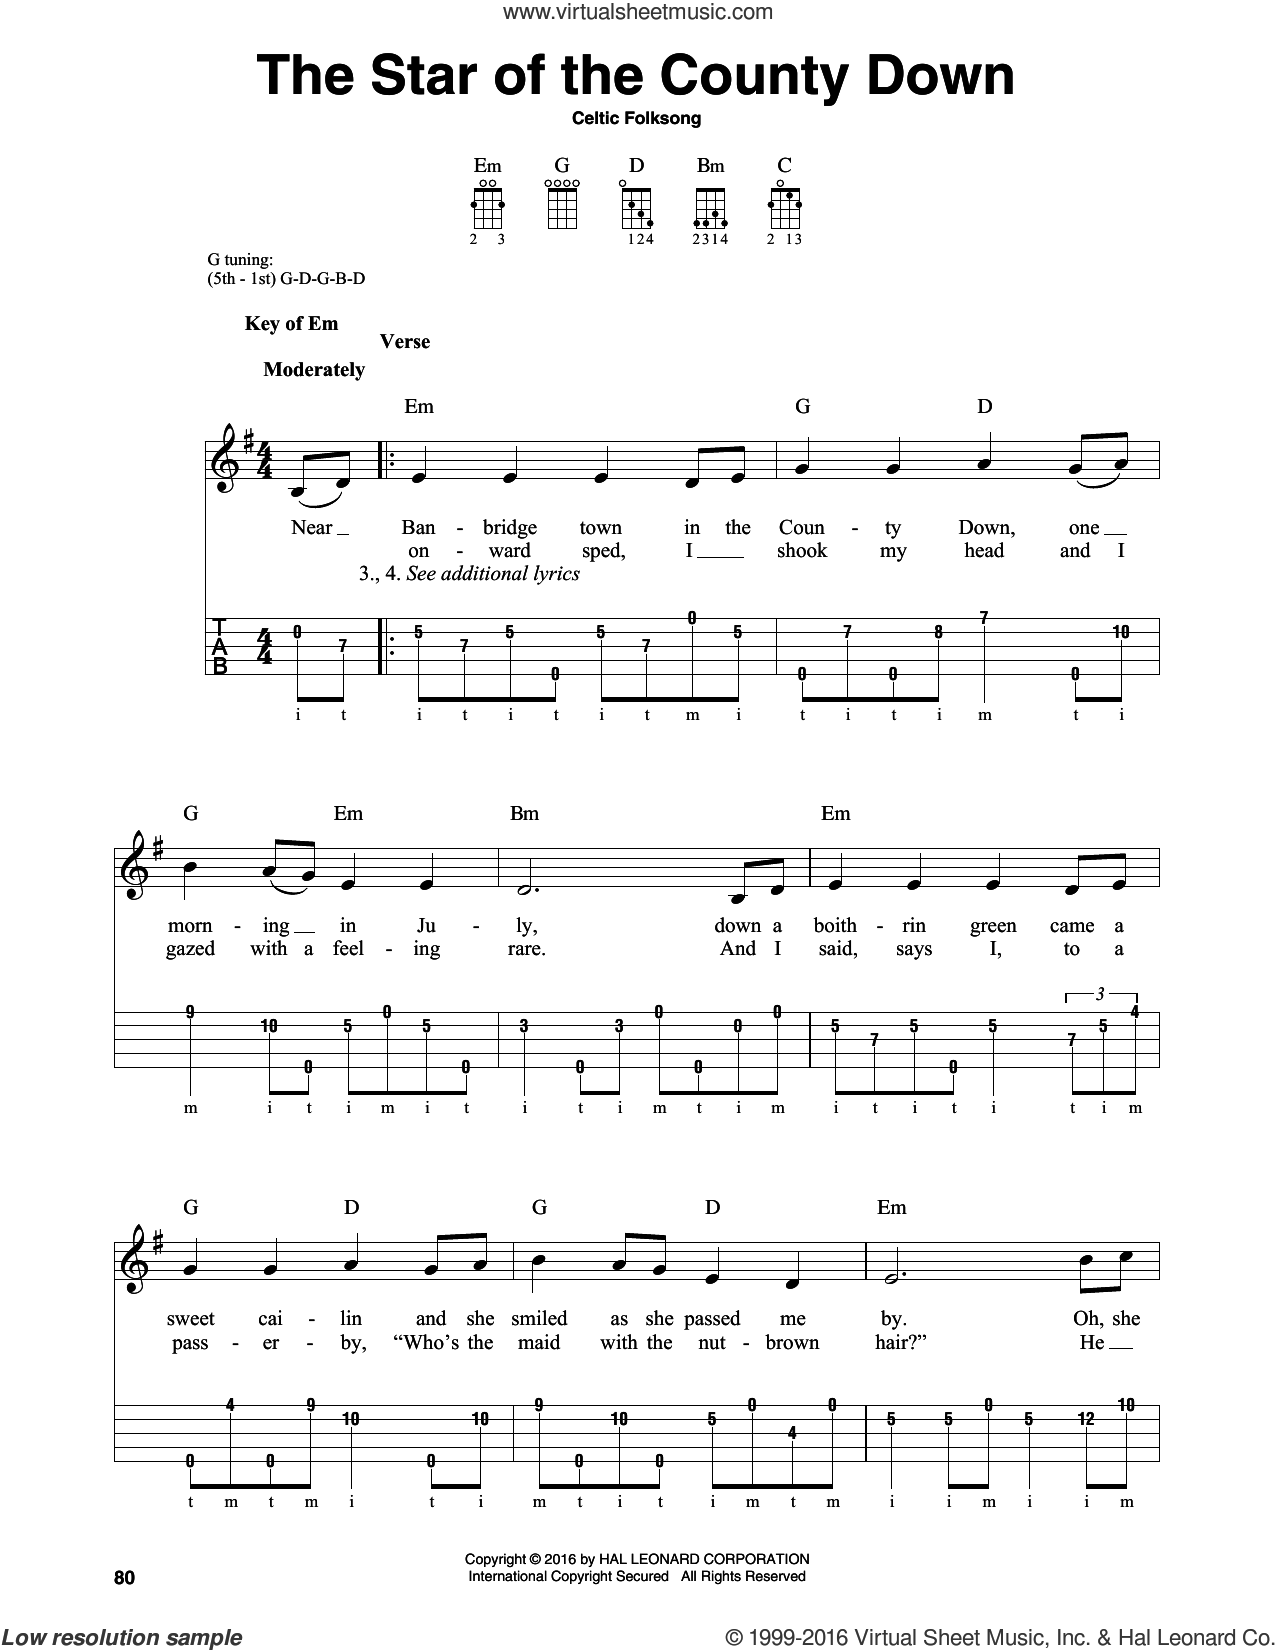 The Star Of The County Down sheet music for banjo solo by Celtic Folksong, intermediate skill level